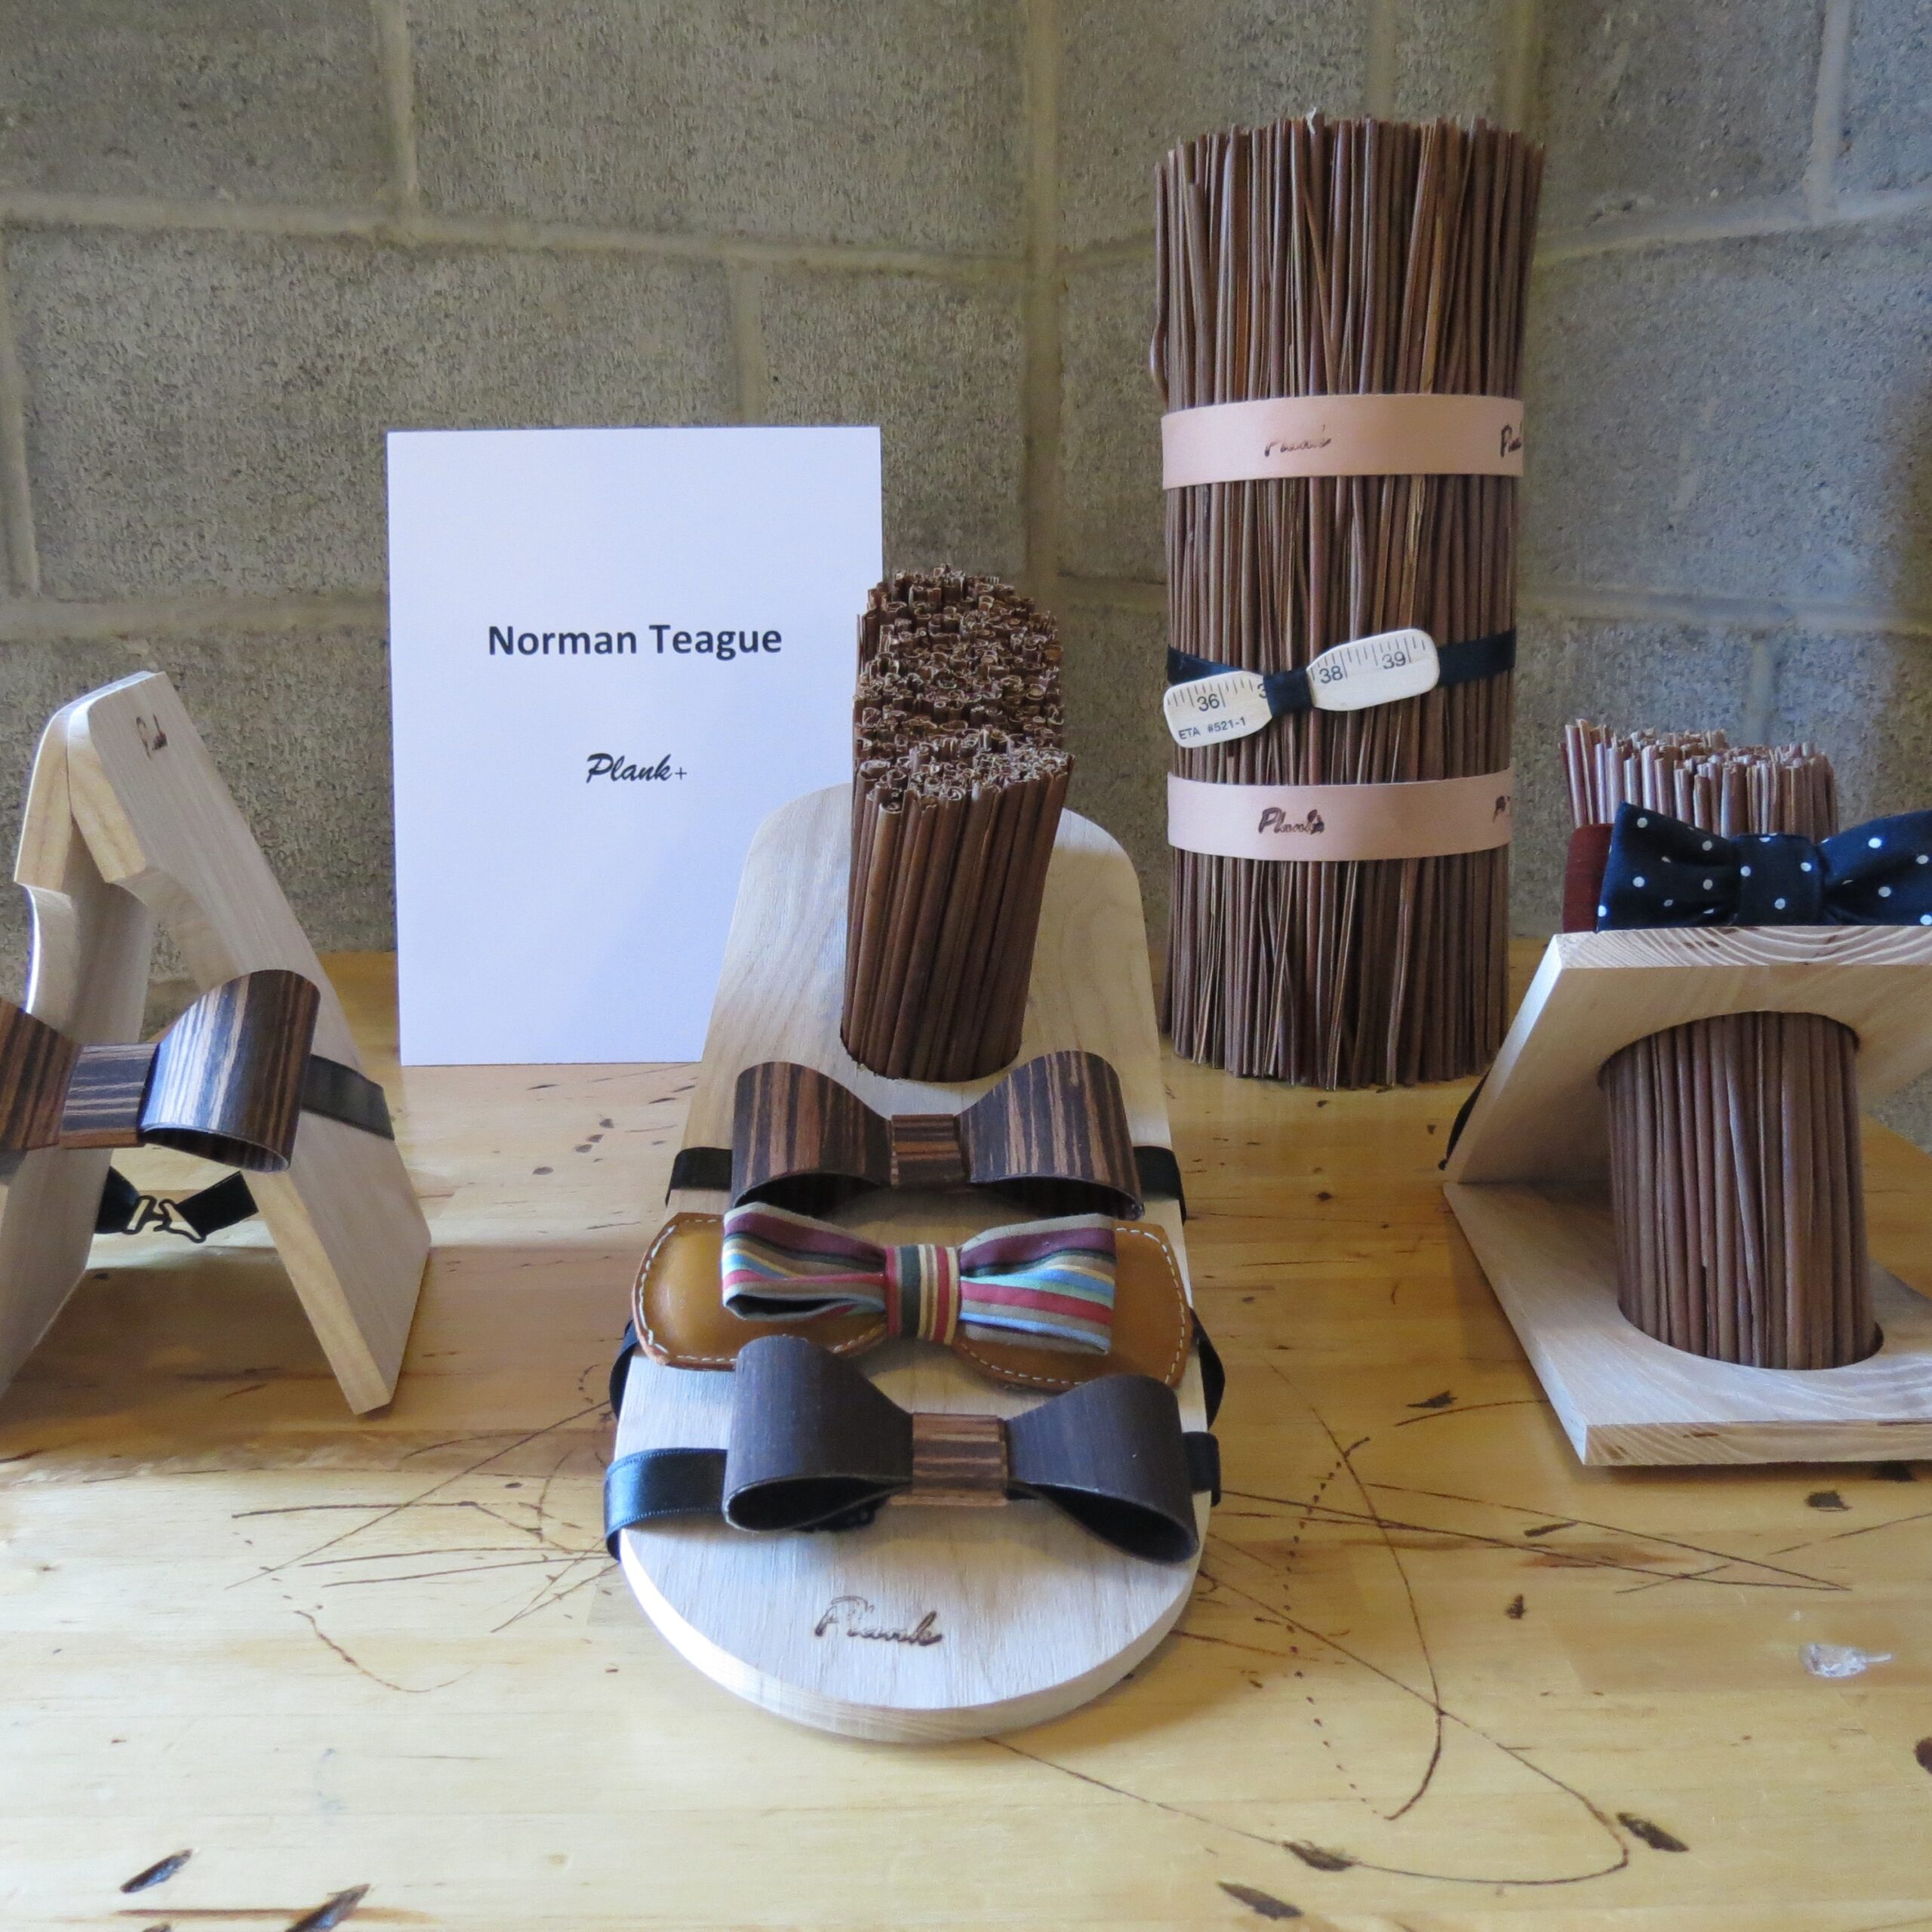 a display of wooden, leather, and fabric bowties by Norman Teague, Plank+